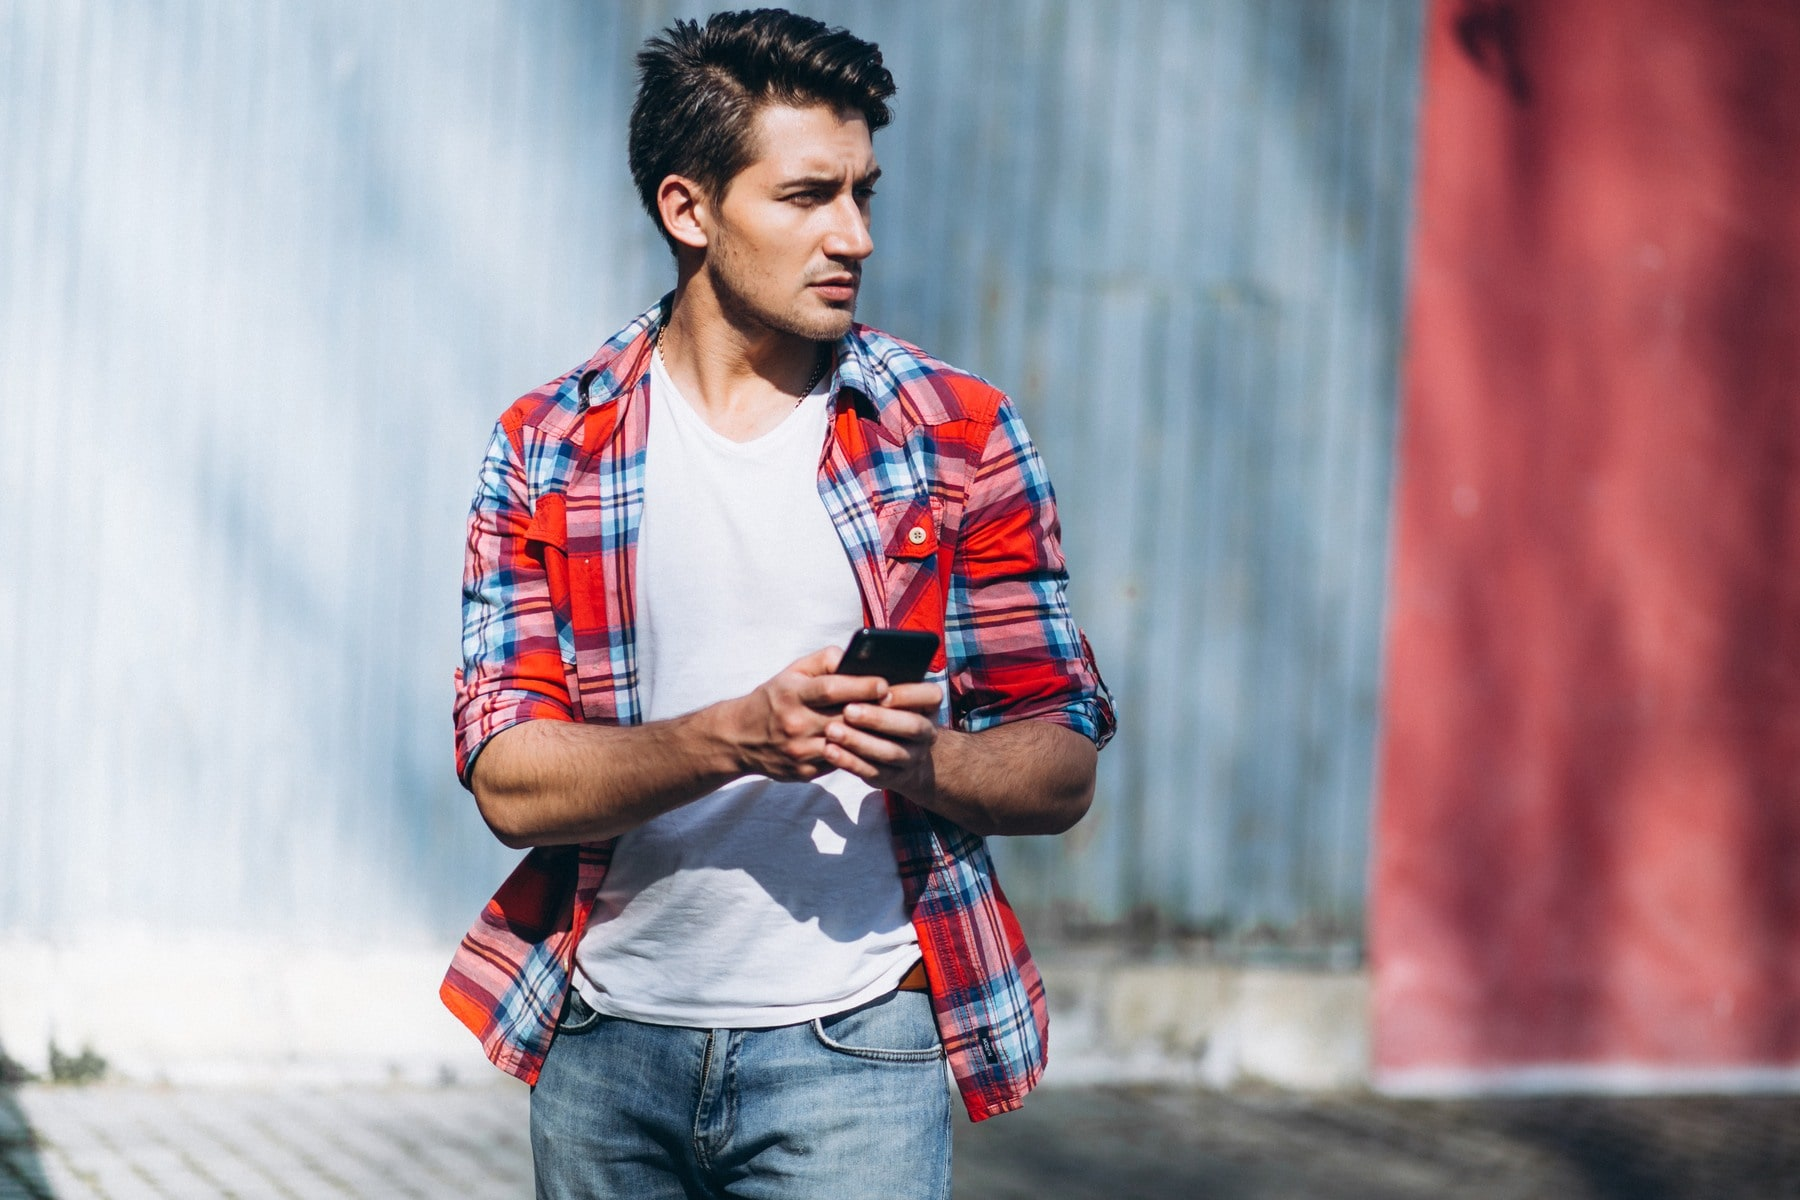 Comb over hairstyles: Man with black hair in comb over hairstyle wearing a plaid polo and white shirt and denim jeans outdoors